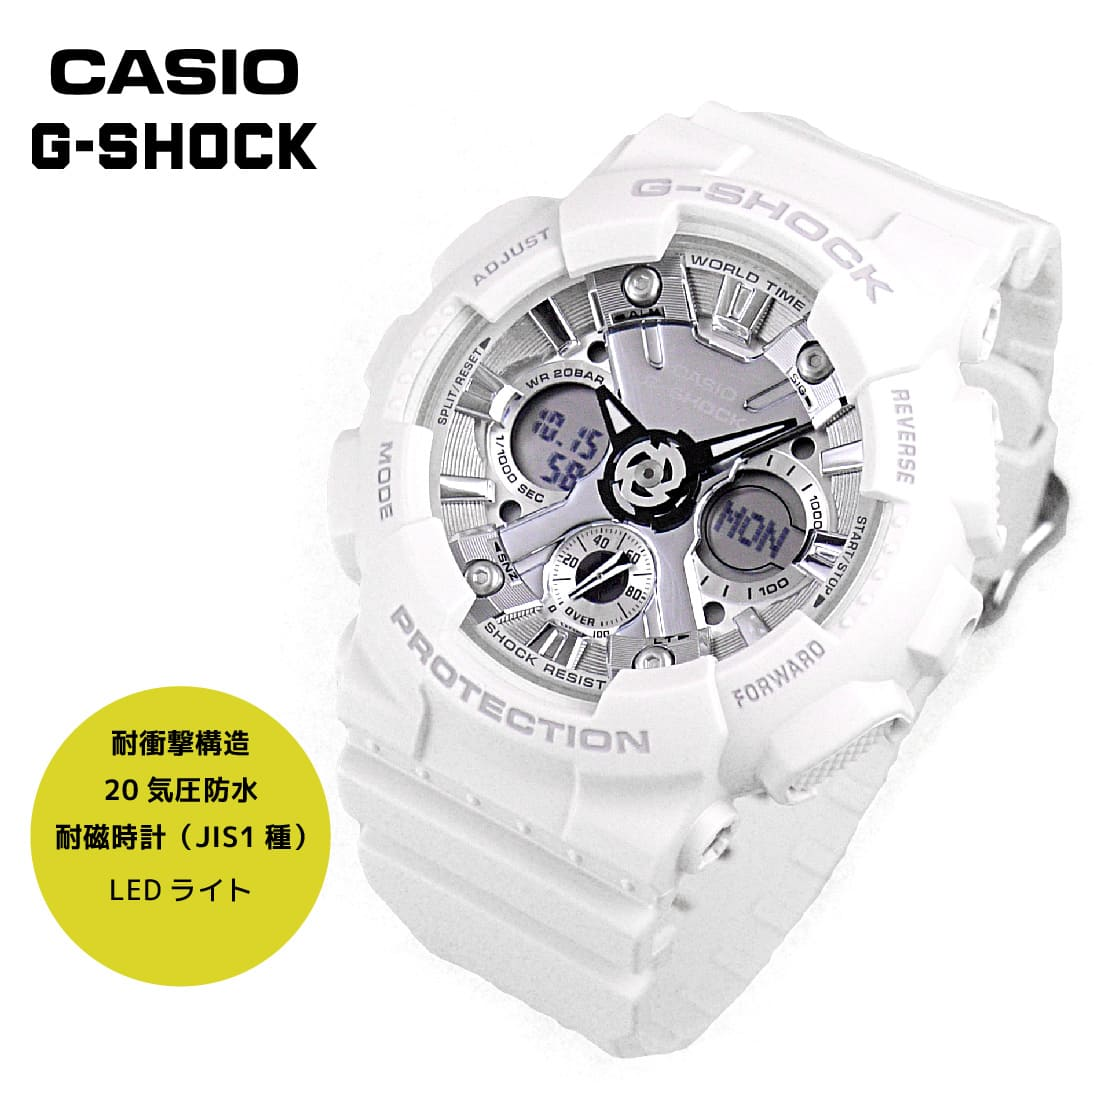 腕時計, 男女兼用腕時計 CASIO G-SHOCK G S series GMA-S120MF-7A1